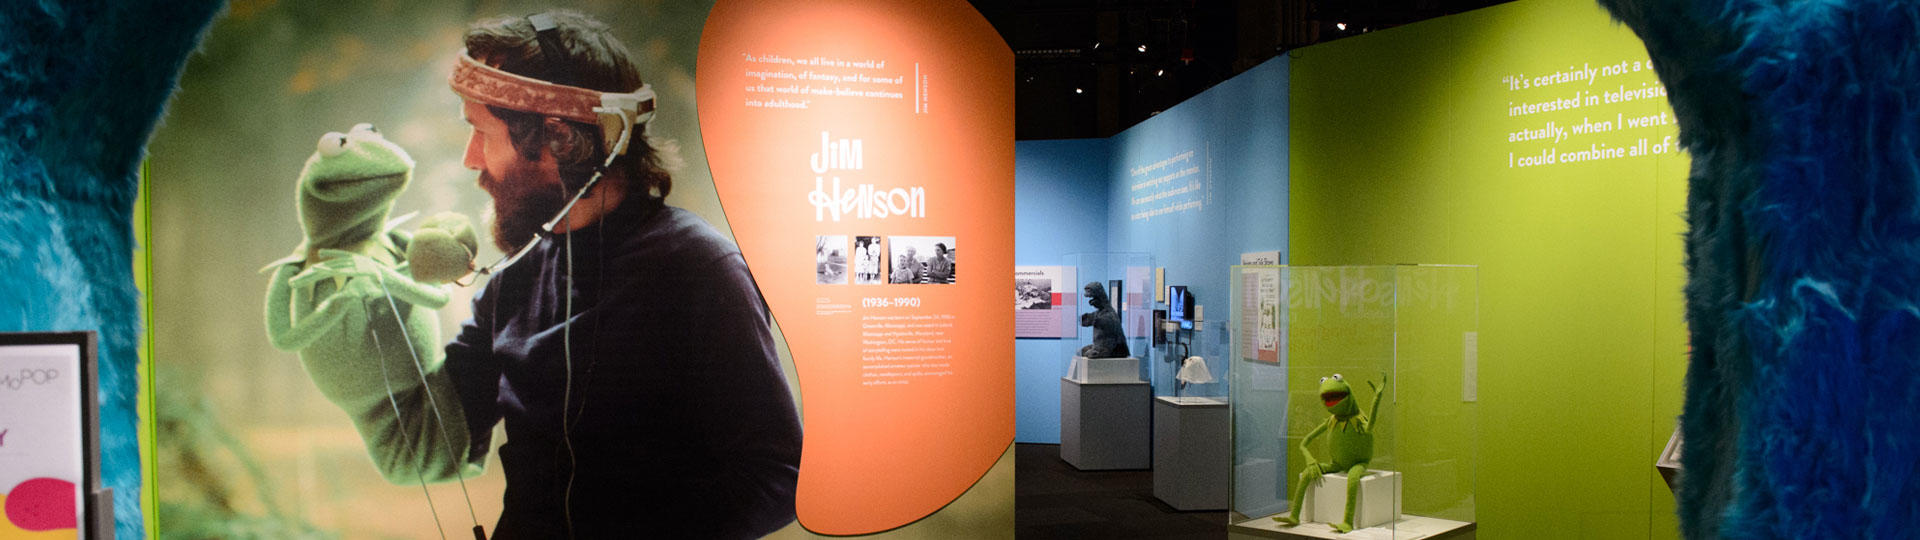 Installation view of The Jim Henson Exhibition. Photo by Jim Bennett, courtesy of Museum of Pop Culture.